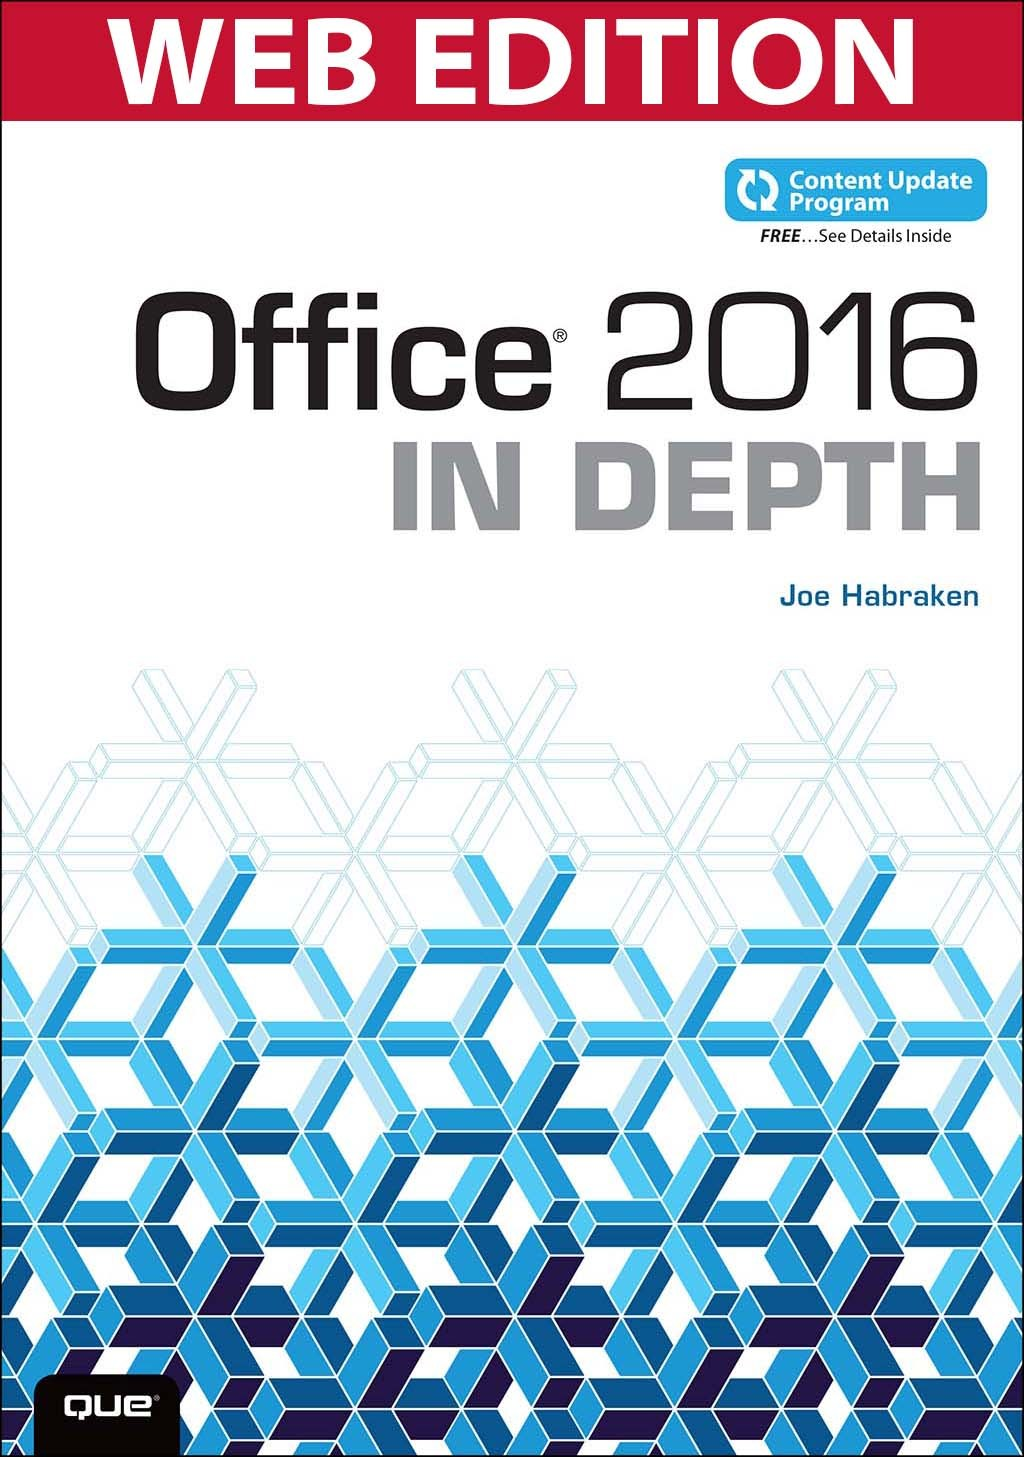 Office 2016 In Depth, (Web Edition and Content Update Program)